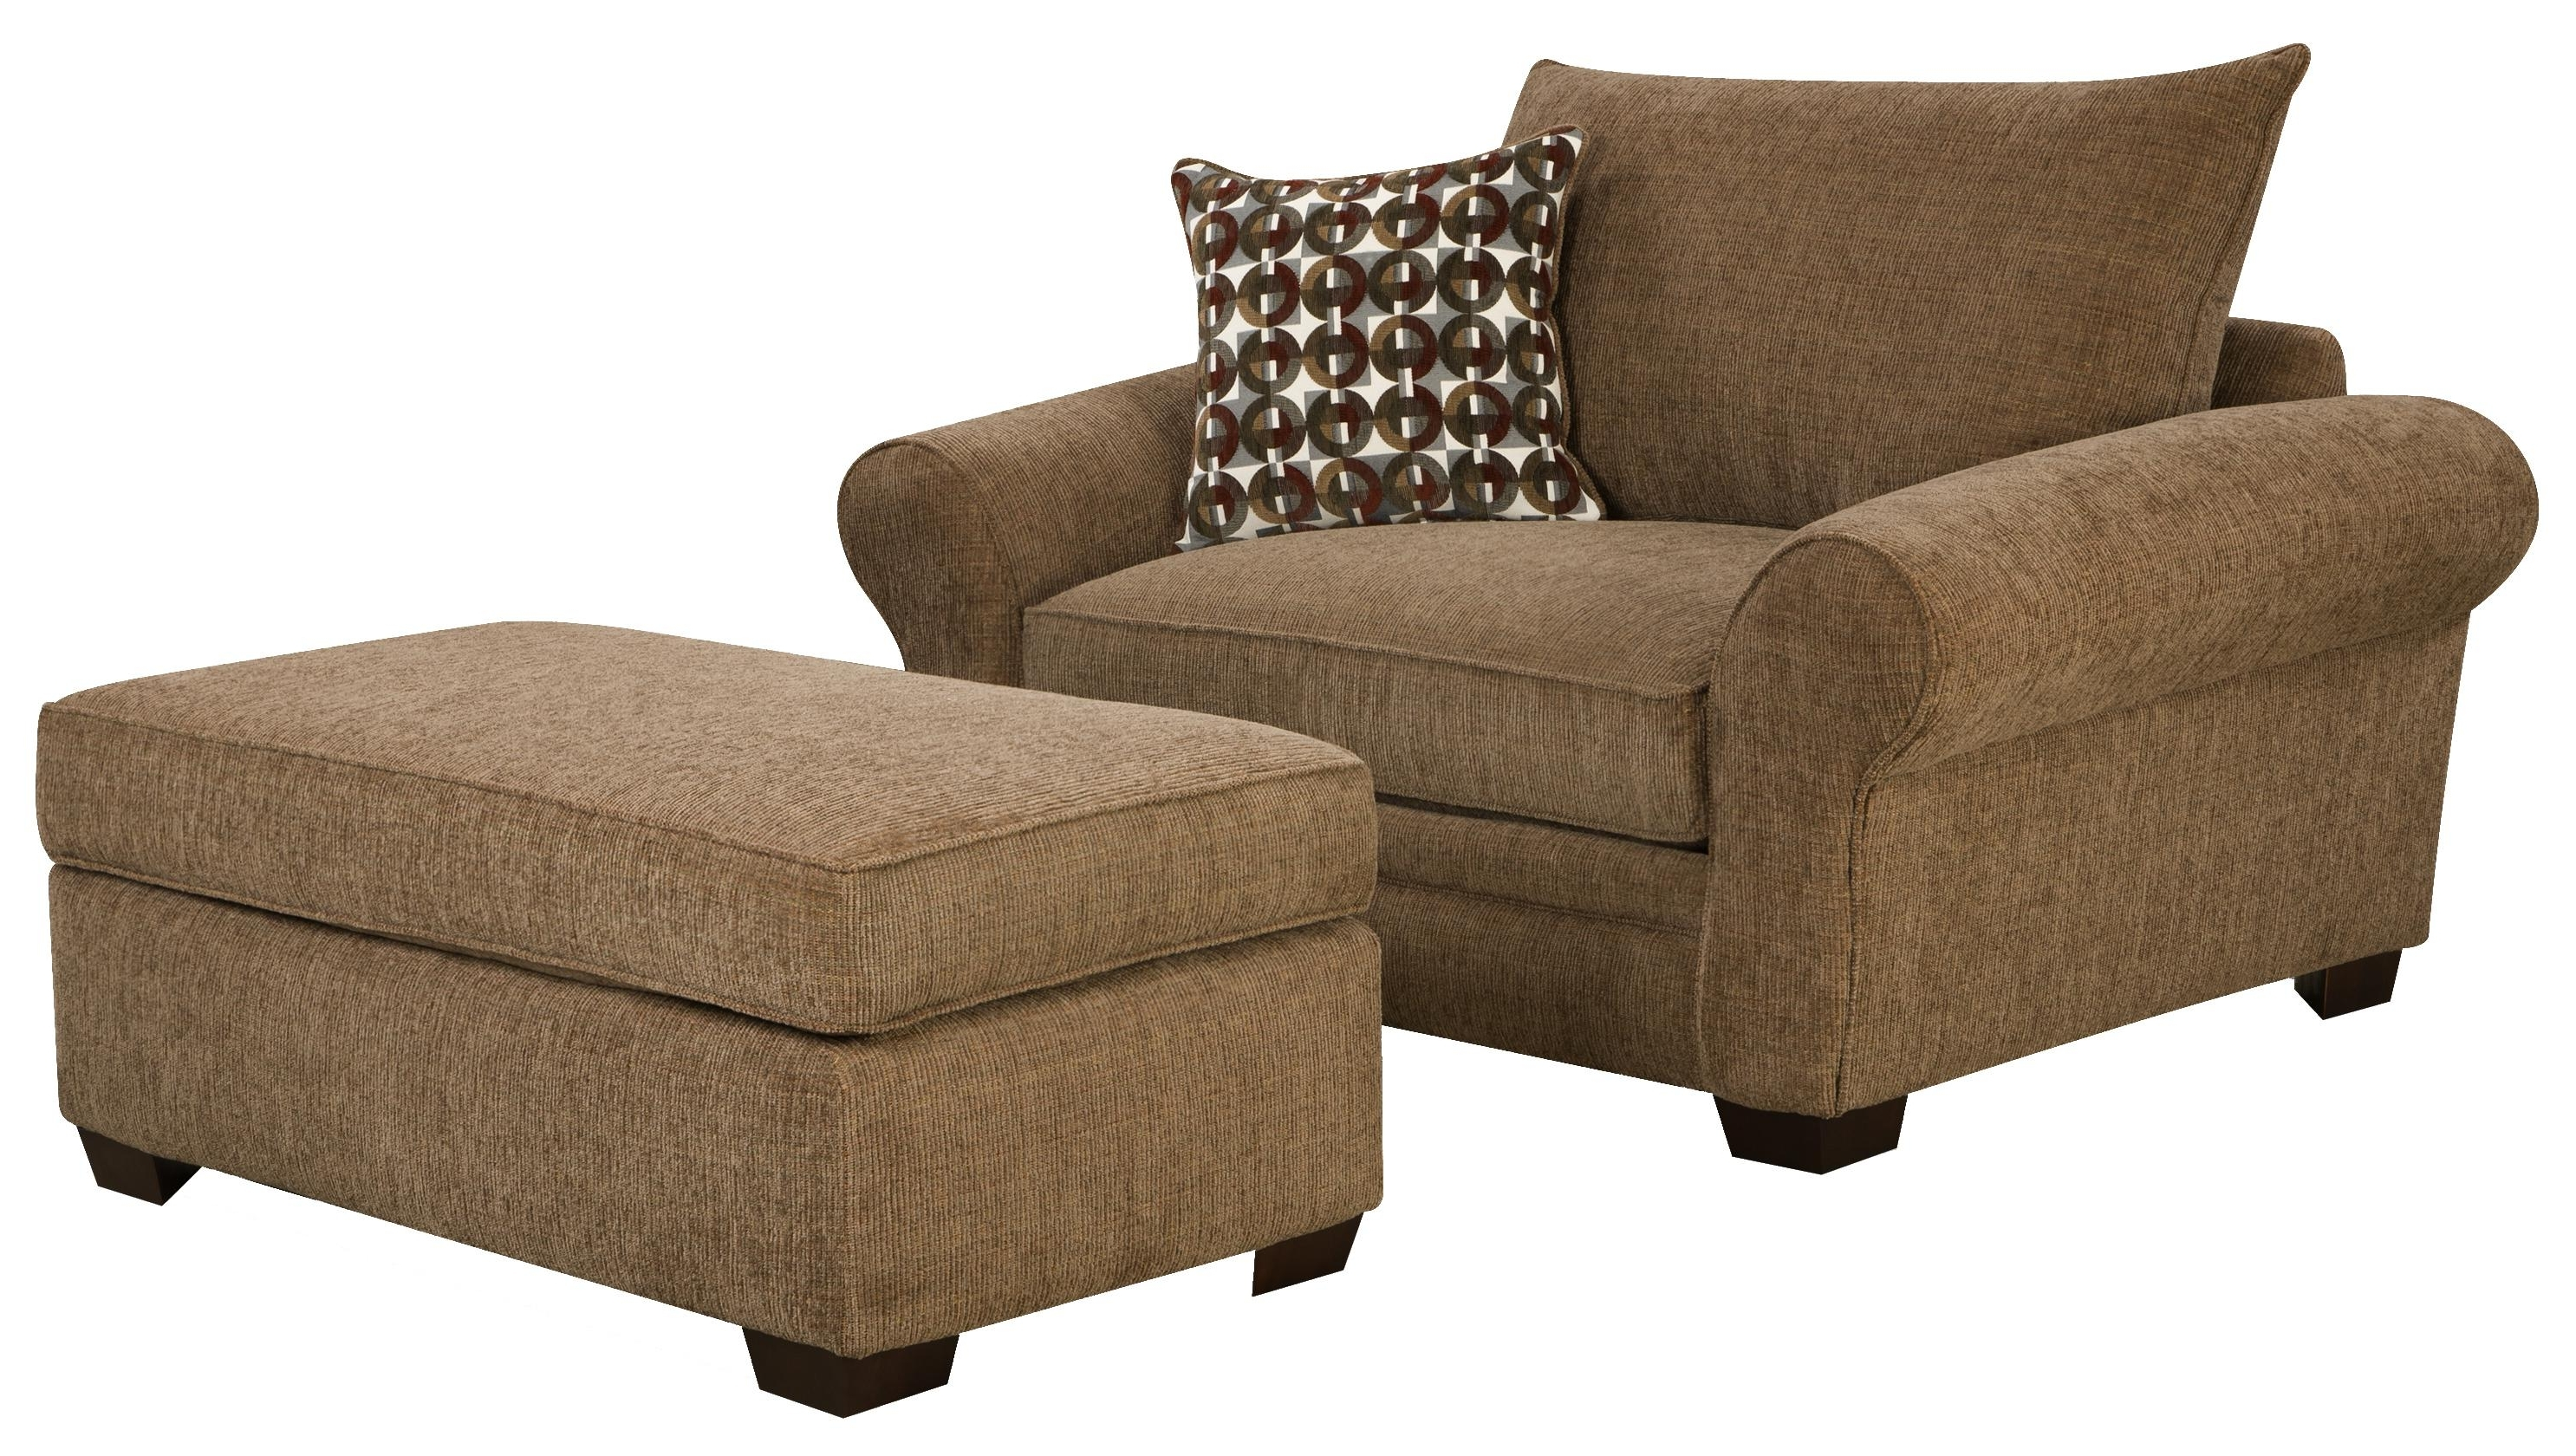 Chairs With Ottoman Regarding Most Popular Corinthian 5460 Extra Large Chair And A Half & Ottoman Set For (View 4 of 20)